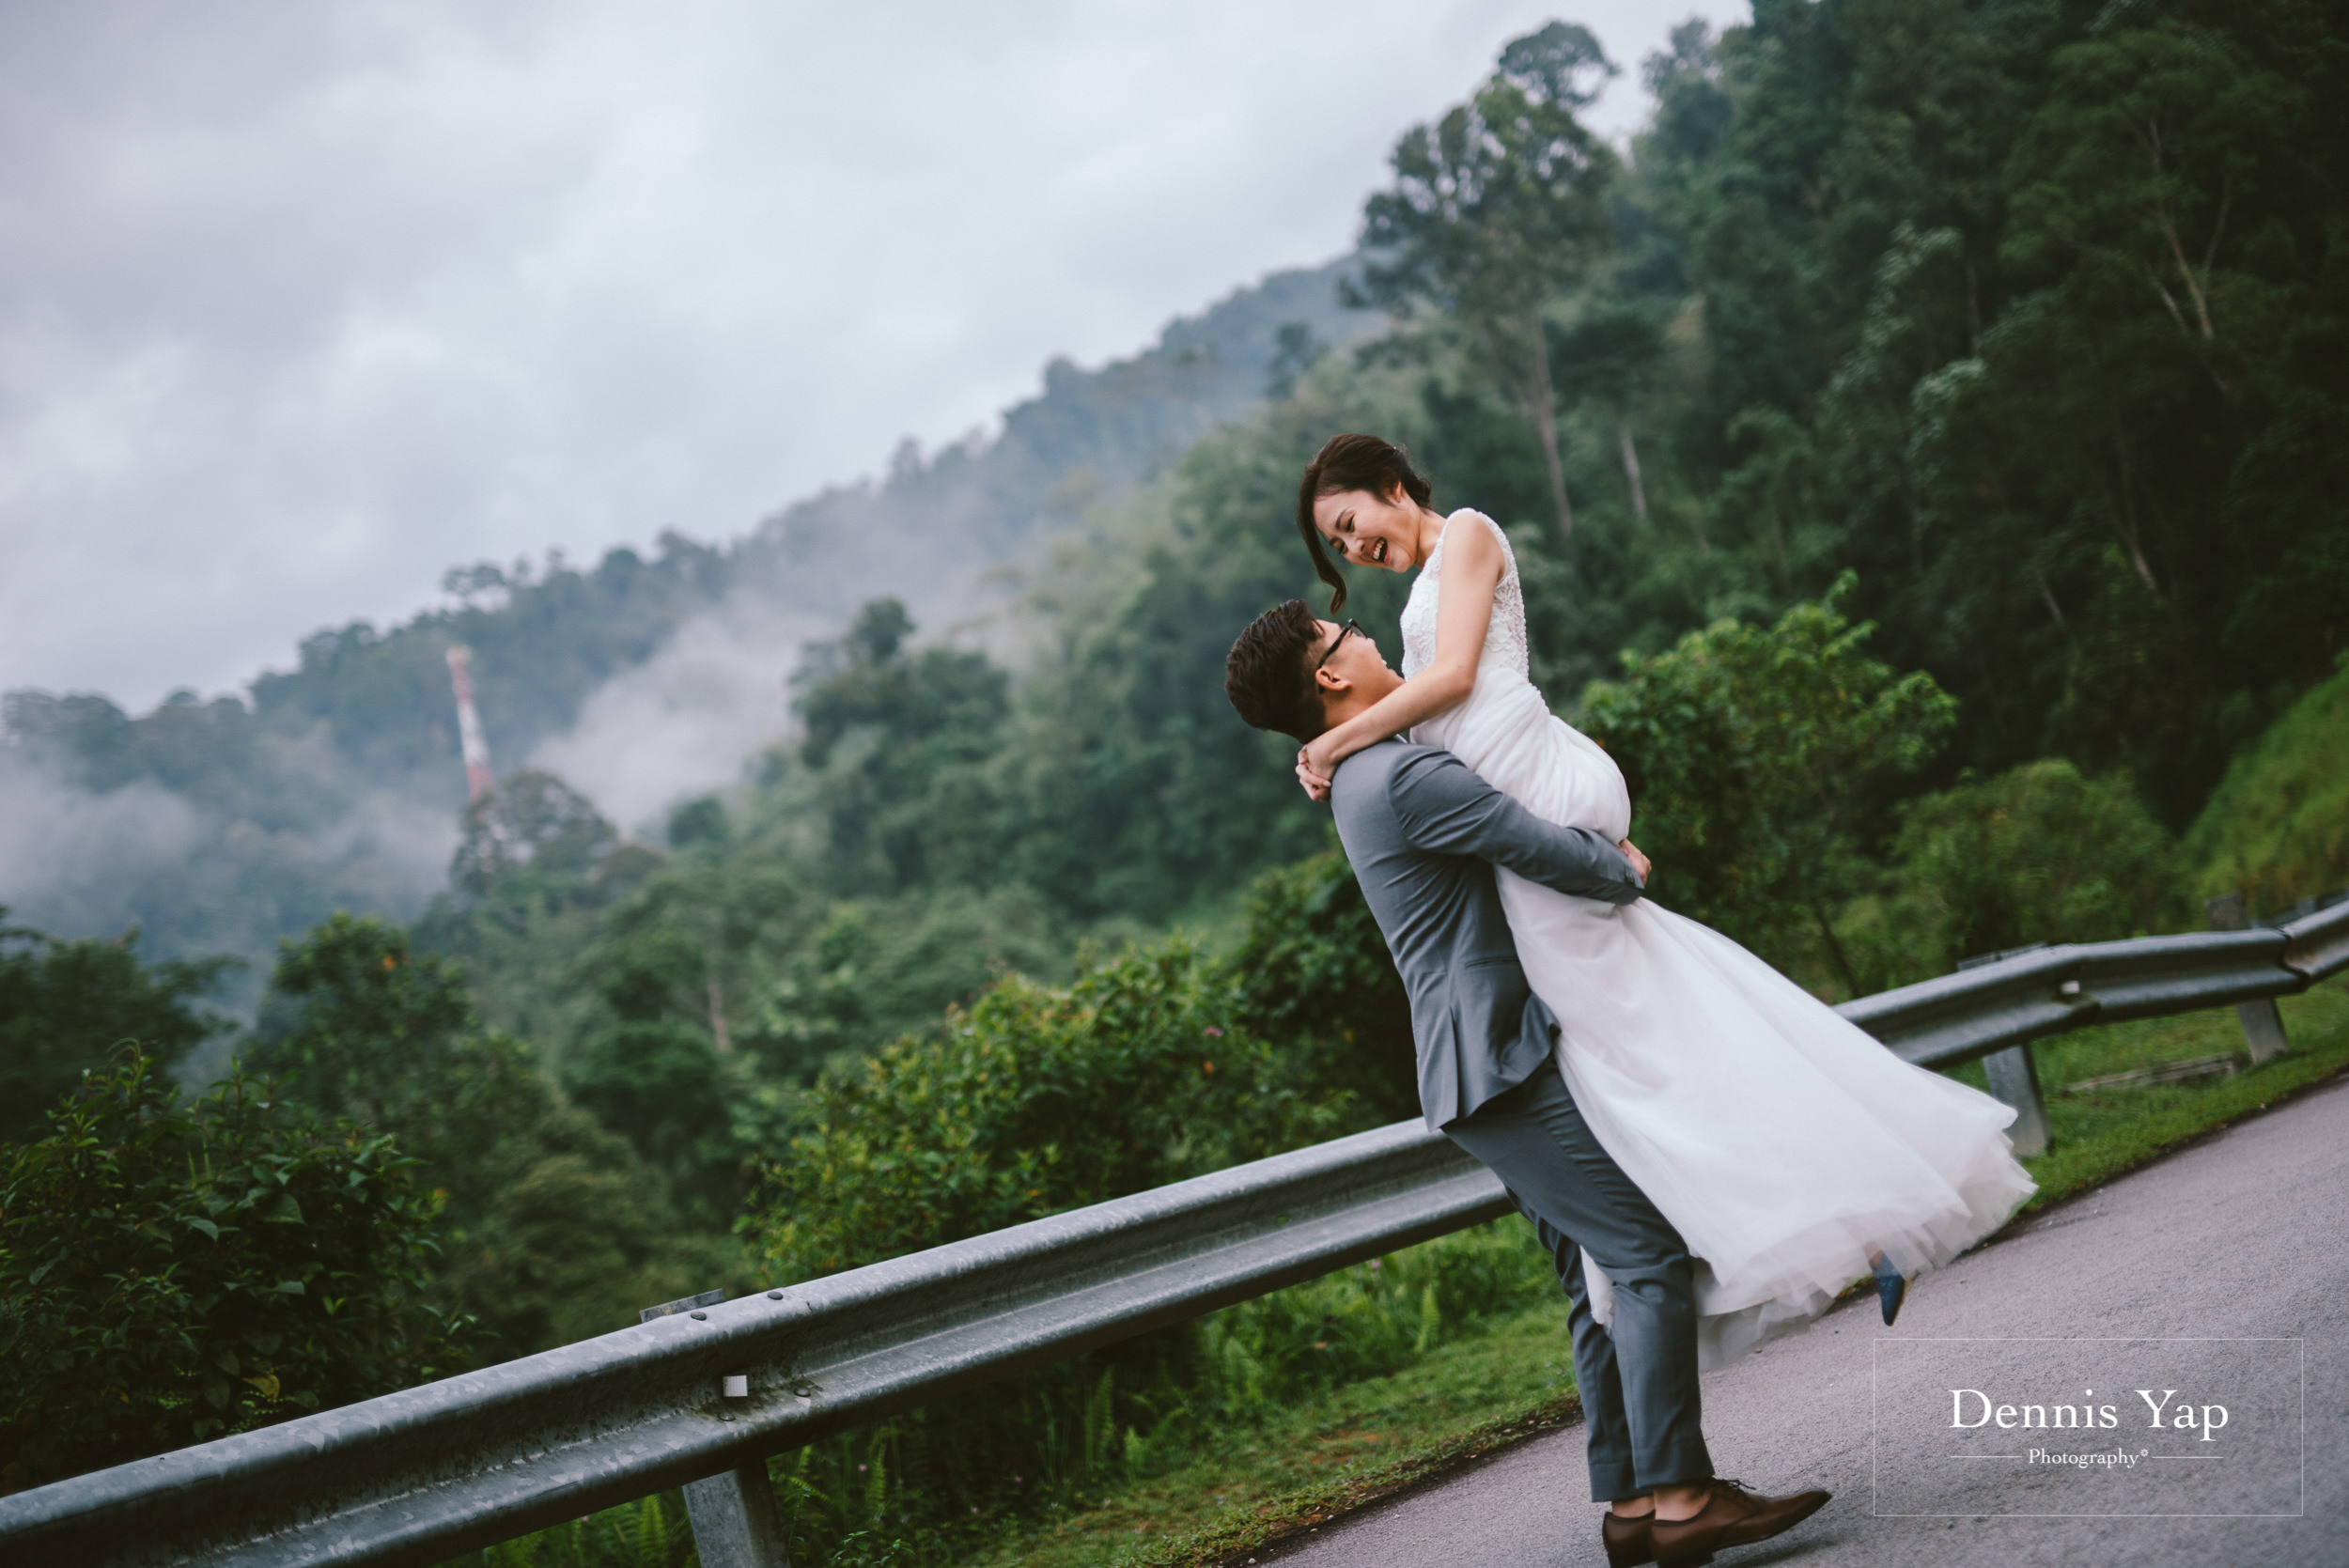 steven ching pre wedding hulu langat namwah road background beloved lookout point dennis yap photography malaysia top photographer-5.jpg